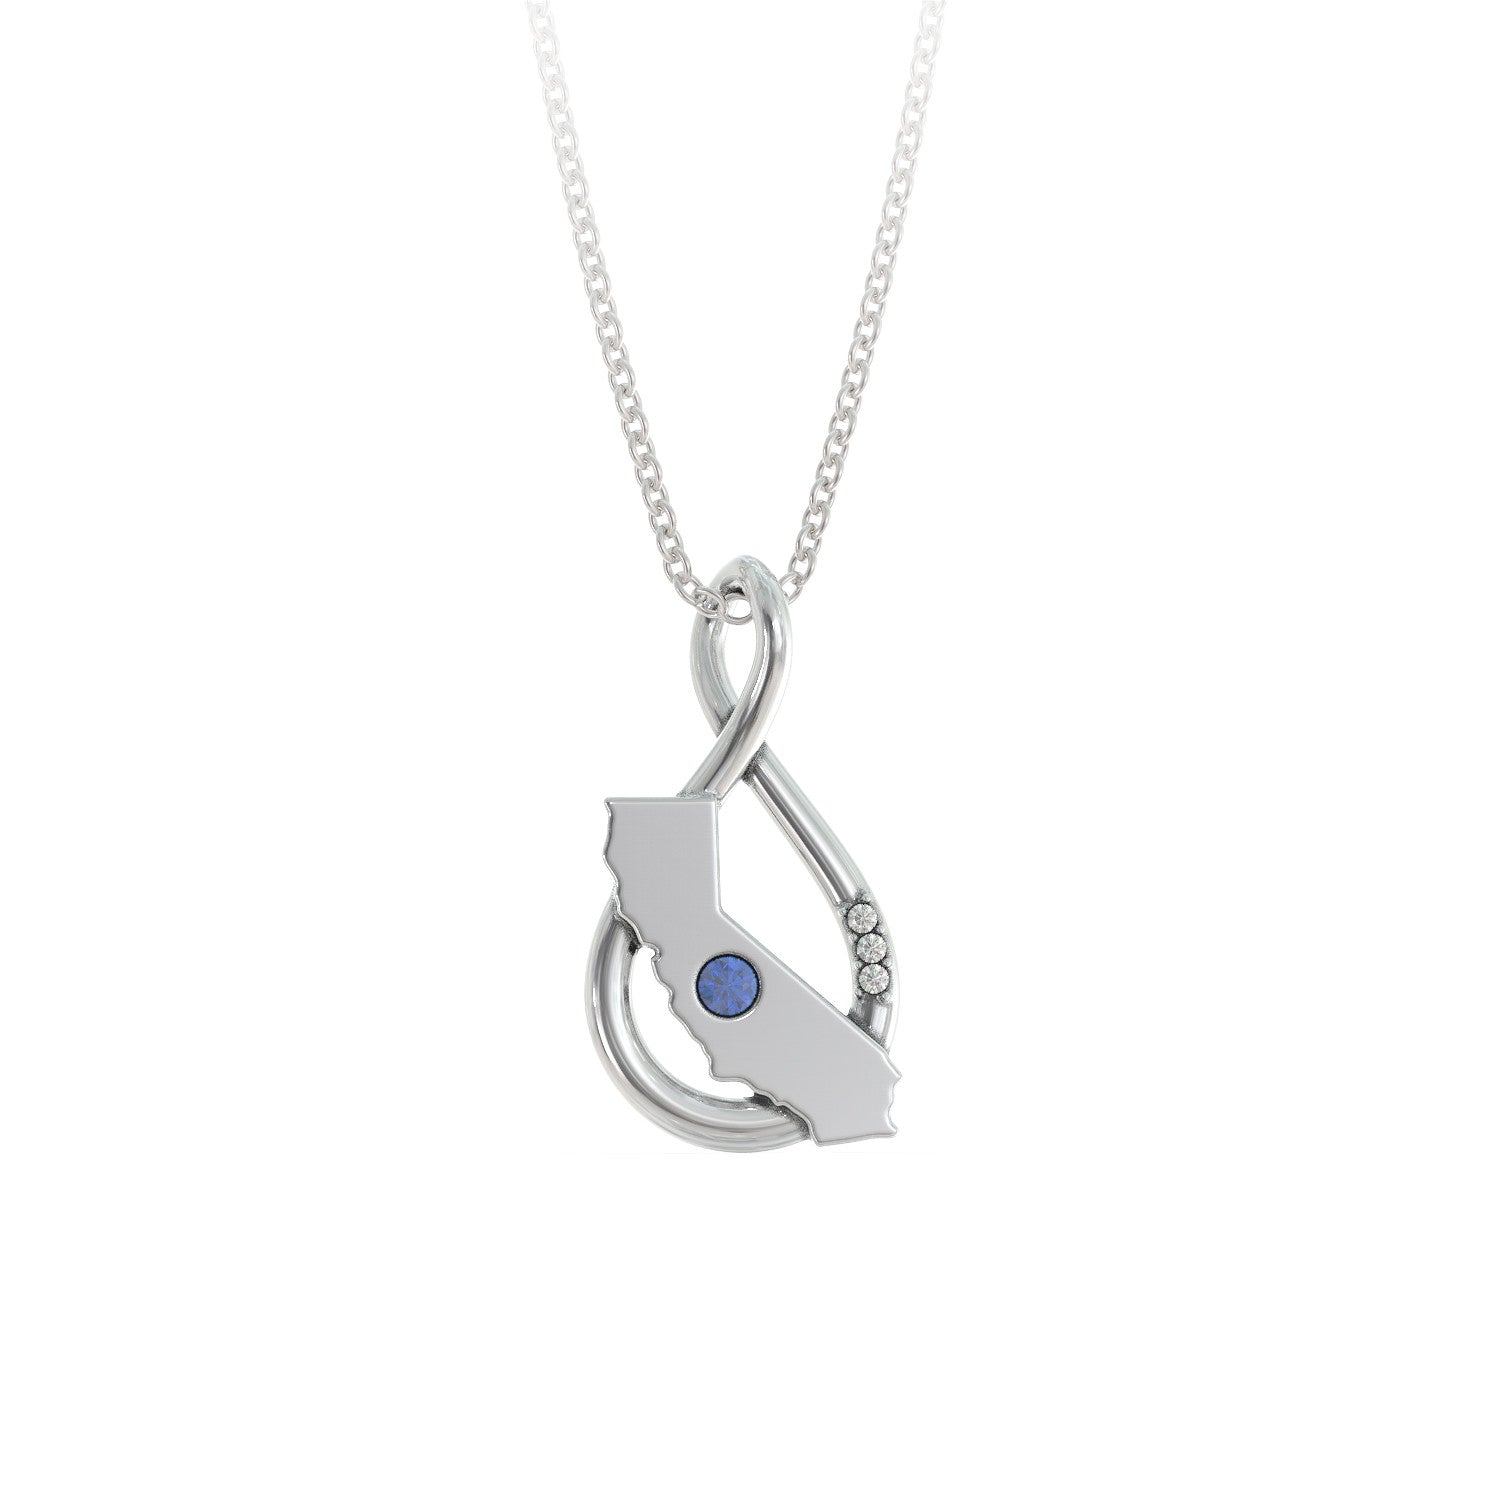 California Caperci Infinity Necklace